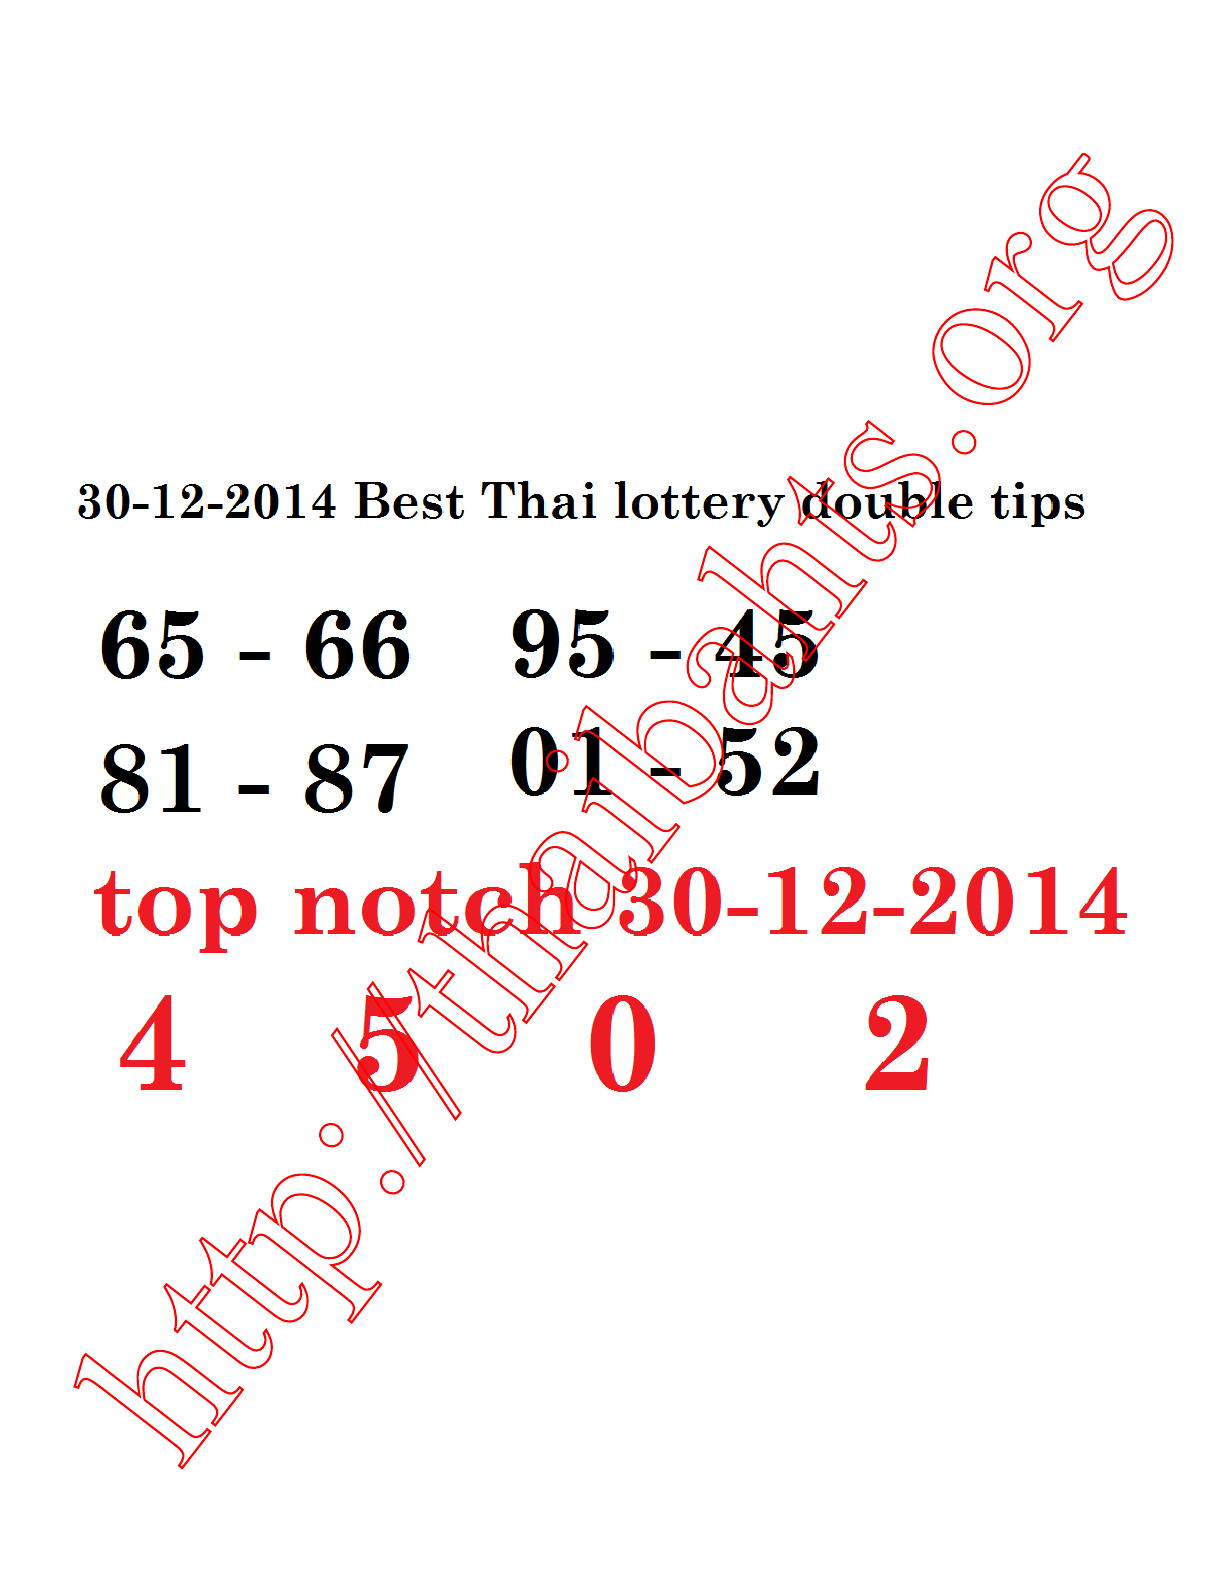 Thai lottery results 30-12-2014 top notch tip